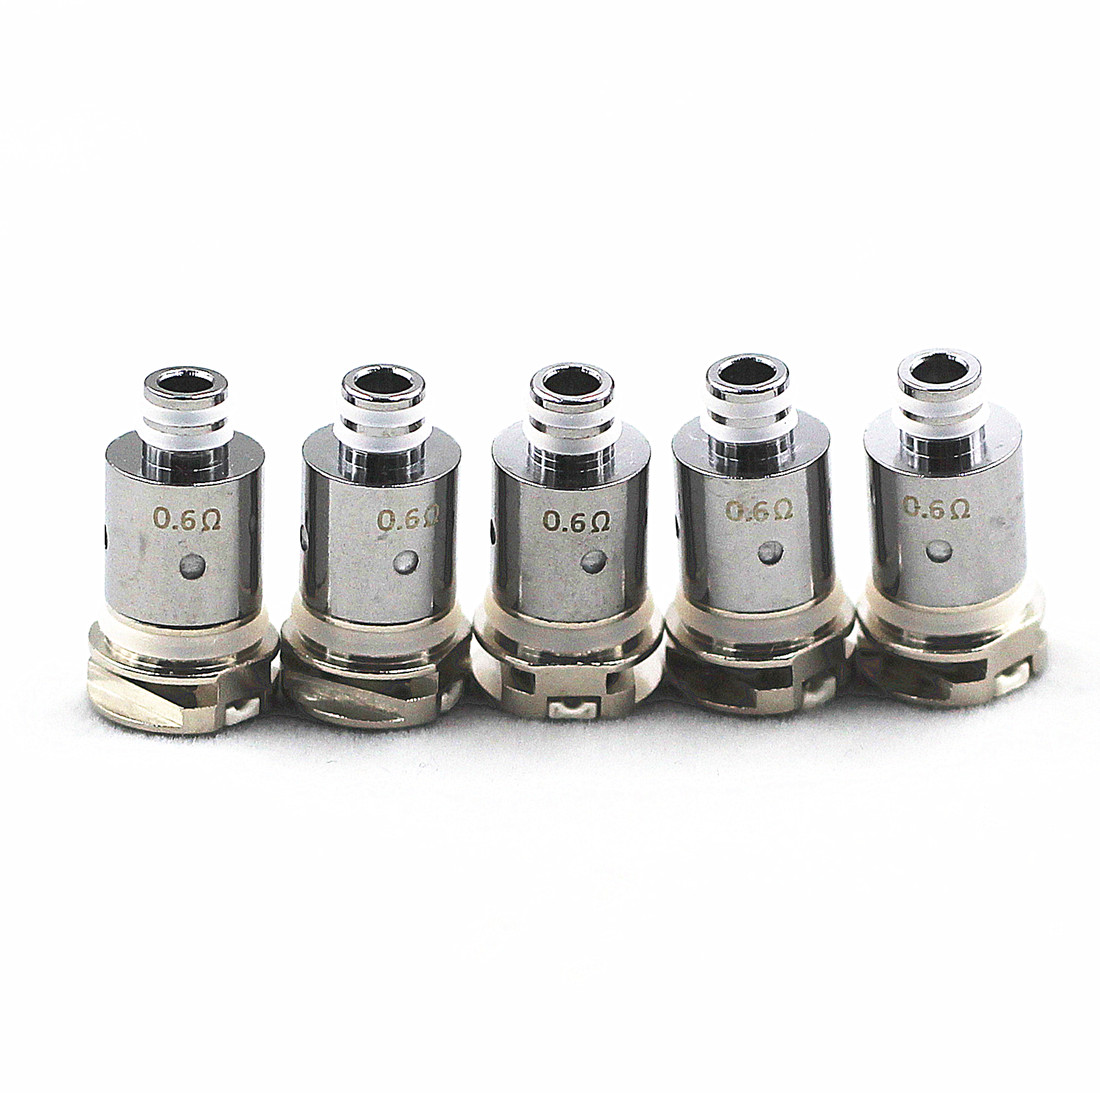 5pcs Noord Replacement Head 1.4ohm Regular Ceramic Coils And 0.6 0.8 Mesh Coils For Pod System Vape Kit